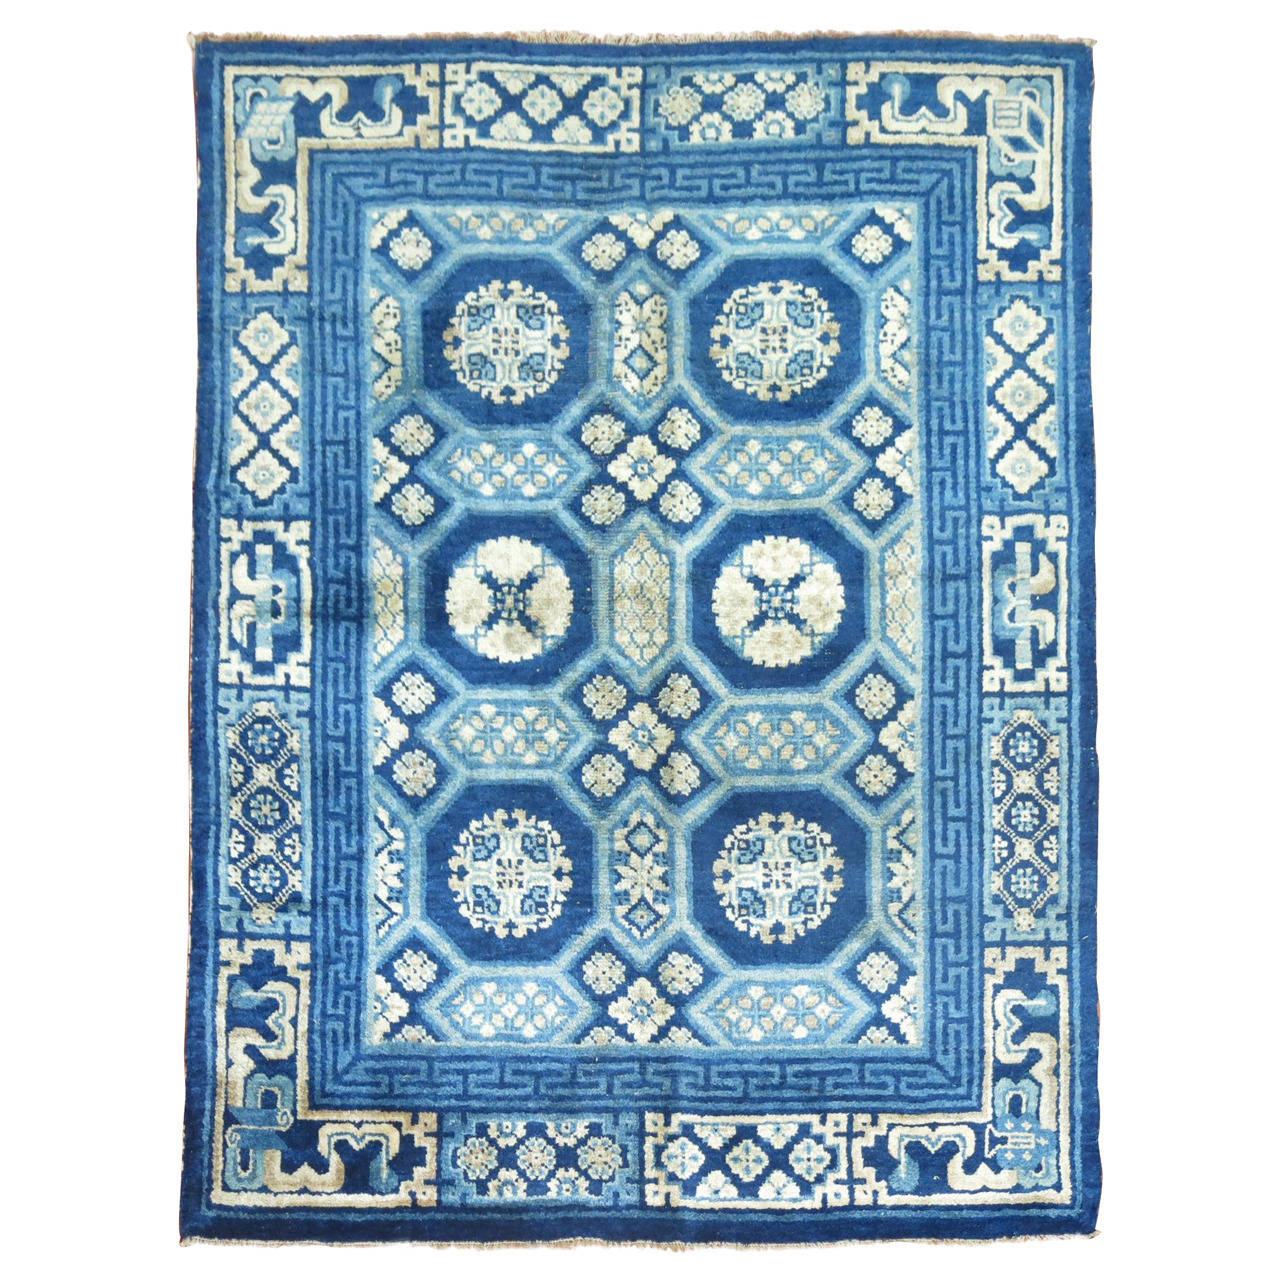 Chinese Carpets And Rugs: Antique Chinese Peking Small Rug At 1stdibs